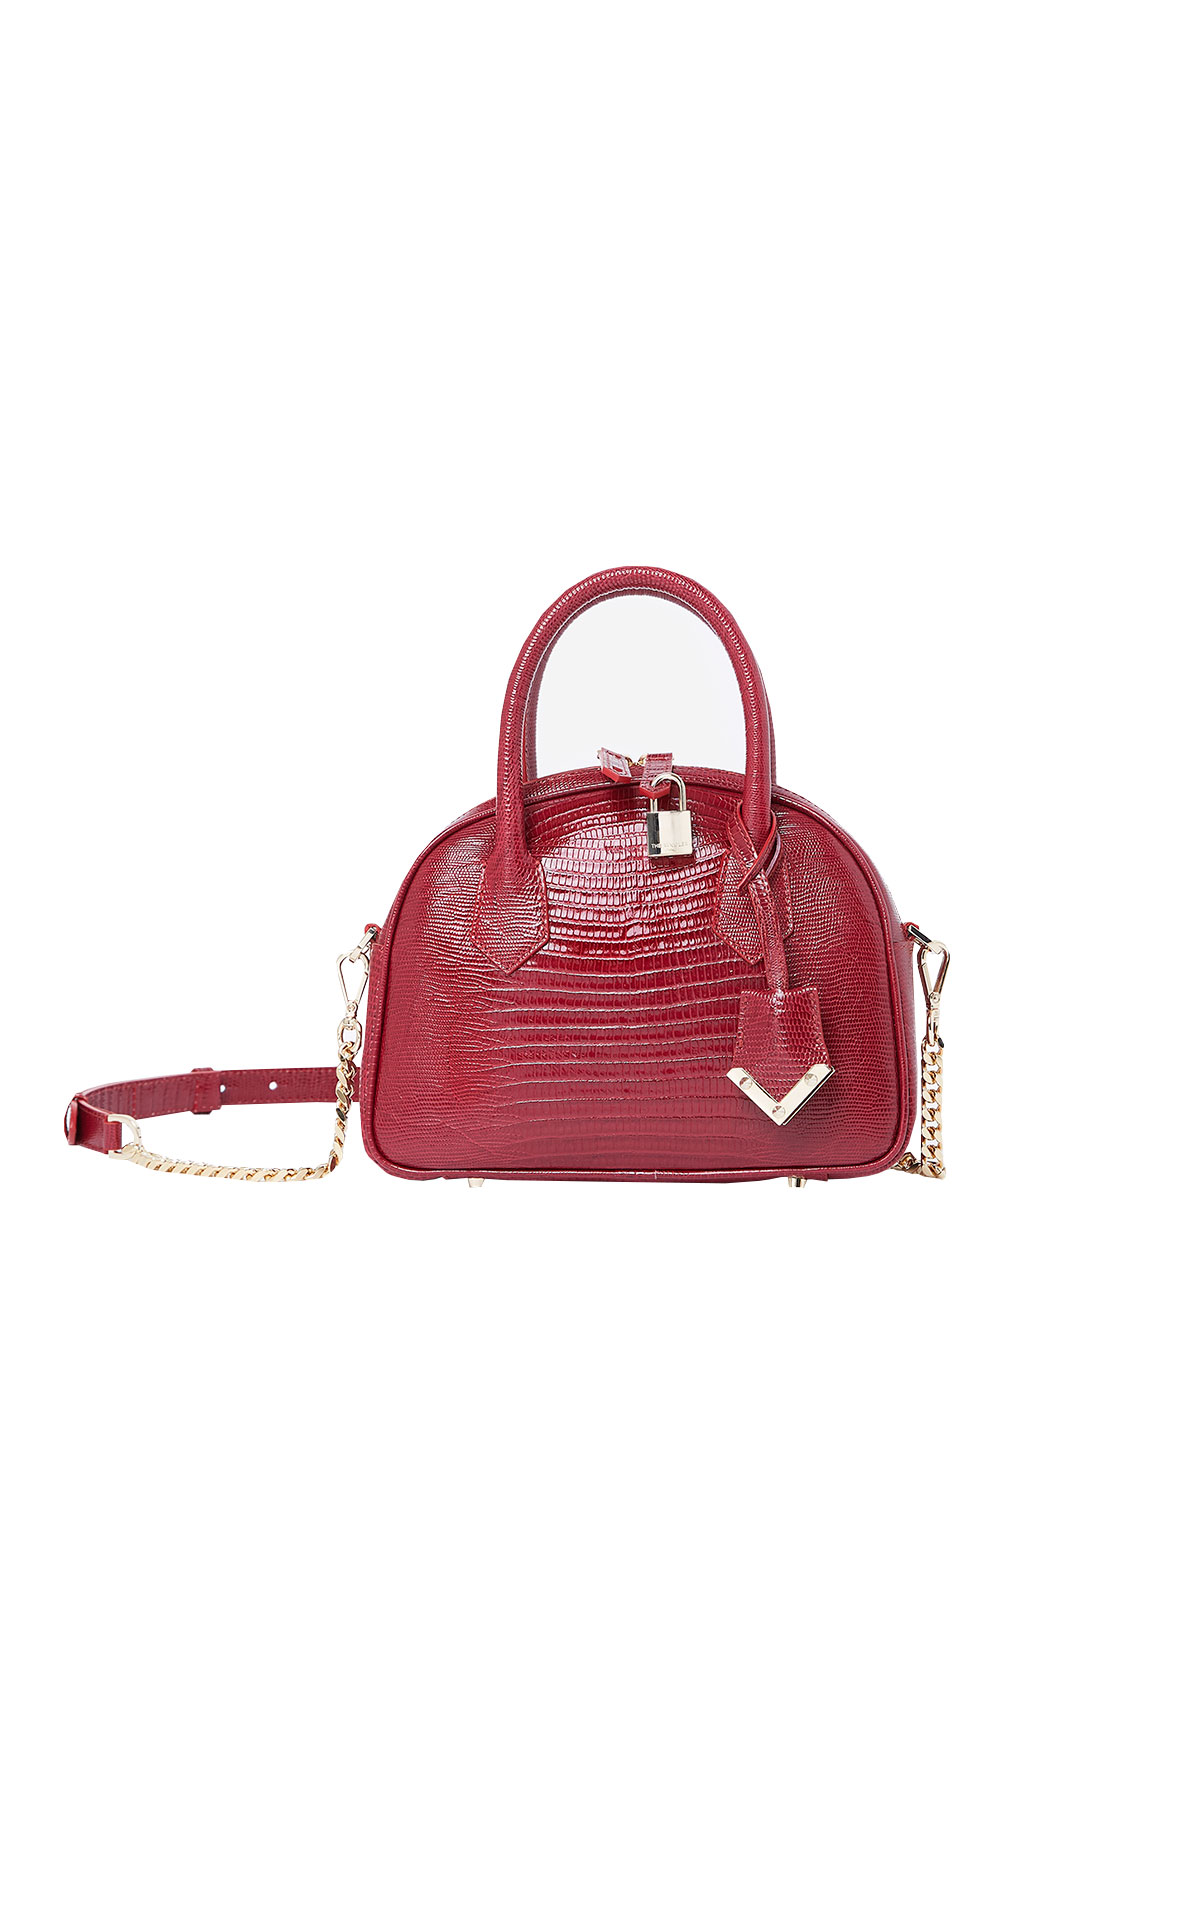 Red Irina bag The Kooples